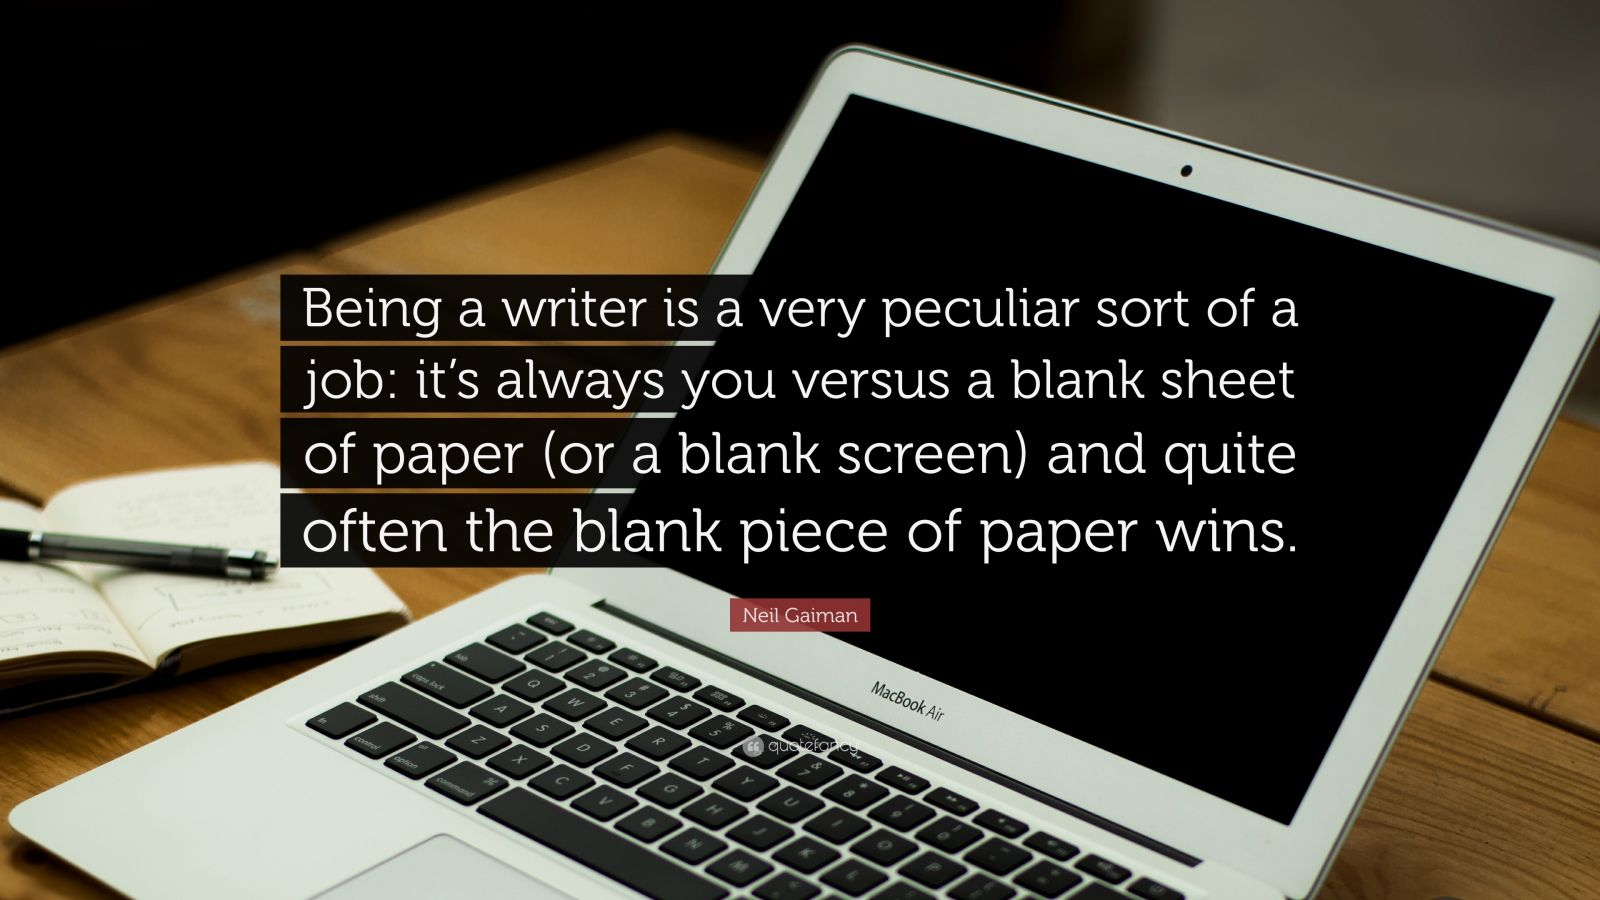 """Neil Gaiman Quote: """"Being a writer is a very peculiar sort of a job: it's always you versus a blank sheet of paper (or a blank screen) and quite often the blank piece of paper wins."""""""